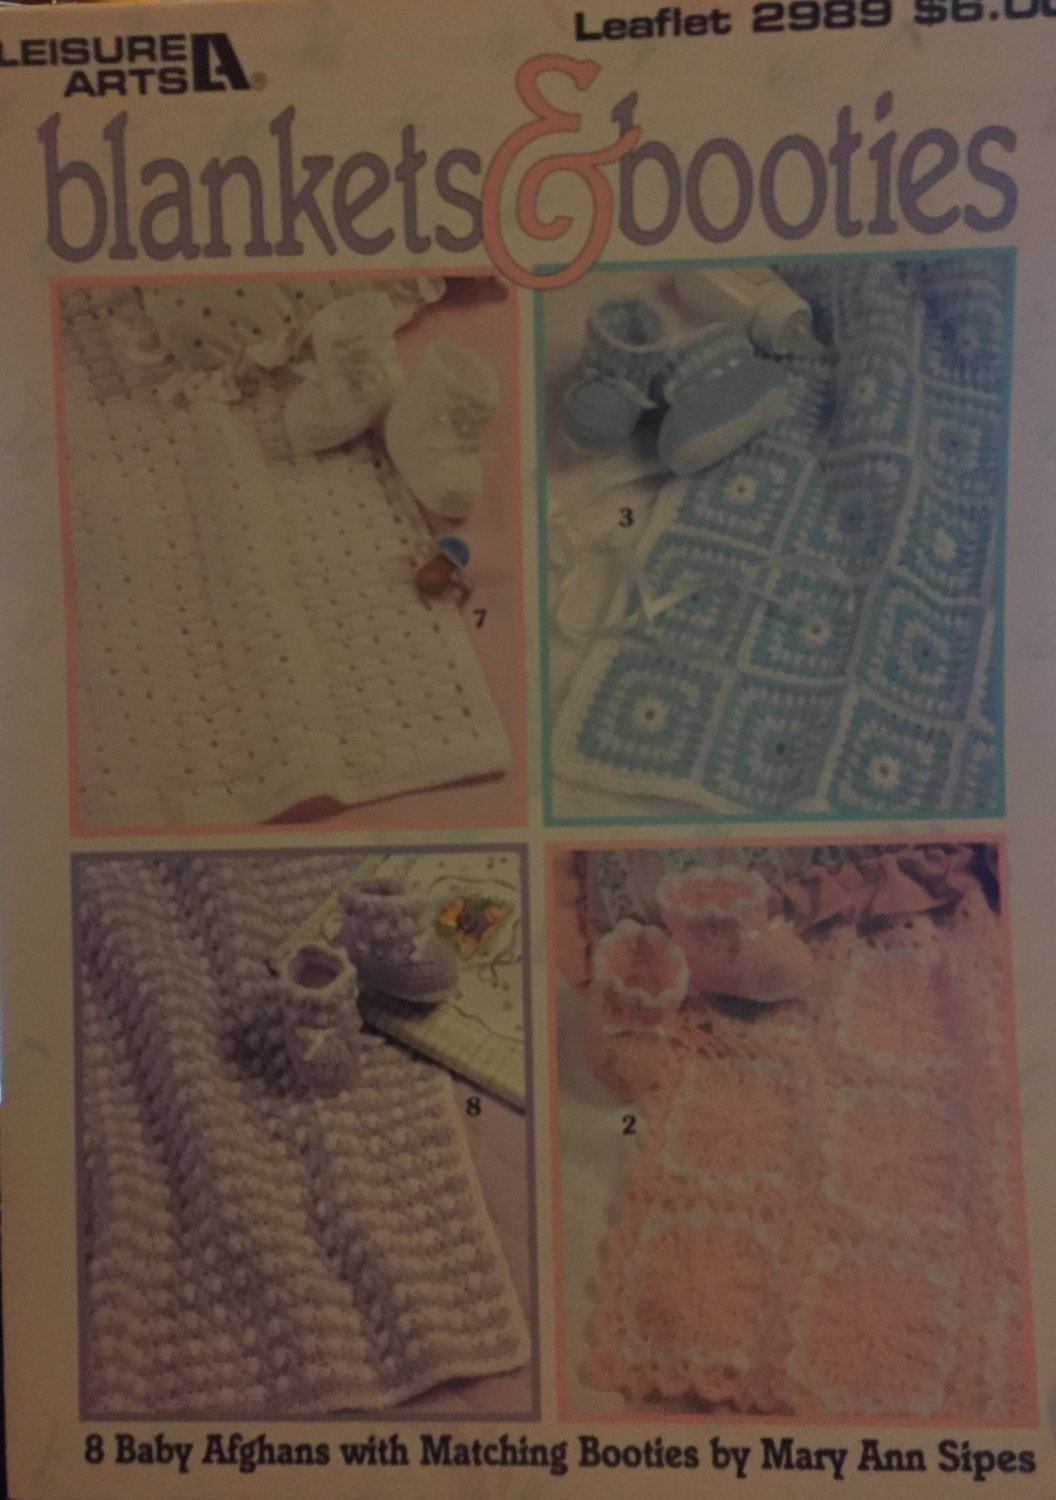 LEISURE ARTS LEAFLET 2989 BLANKETS & BOOTIES MATCHING SETS AFGHANS Crochet Pattern